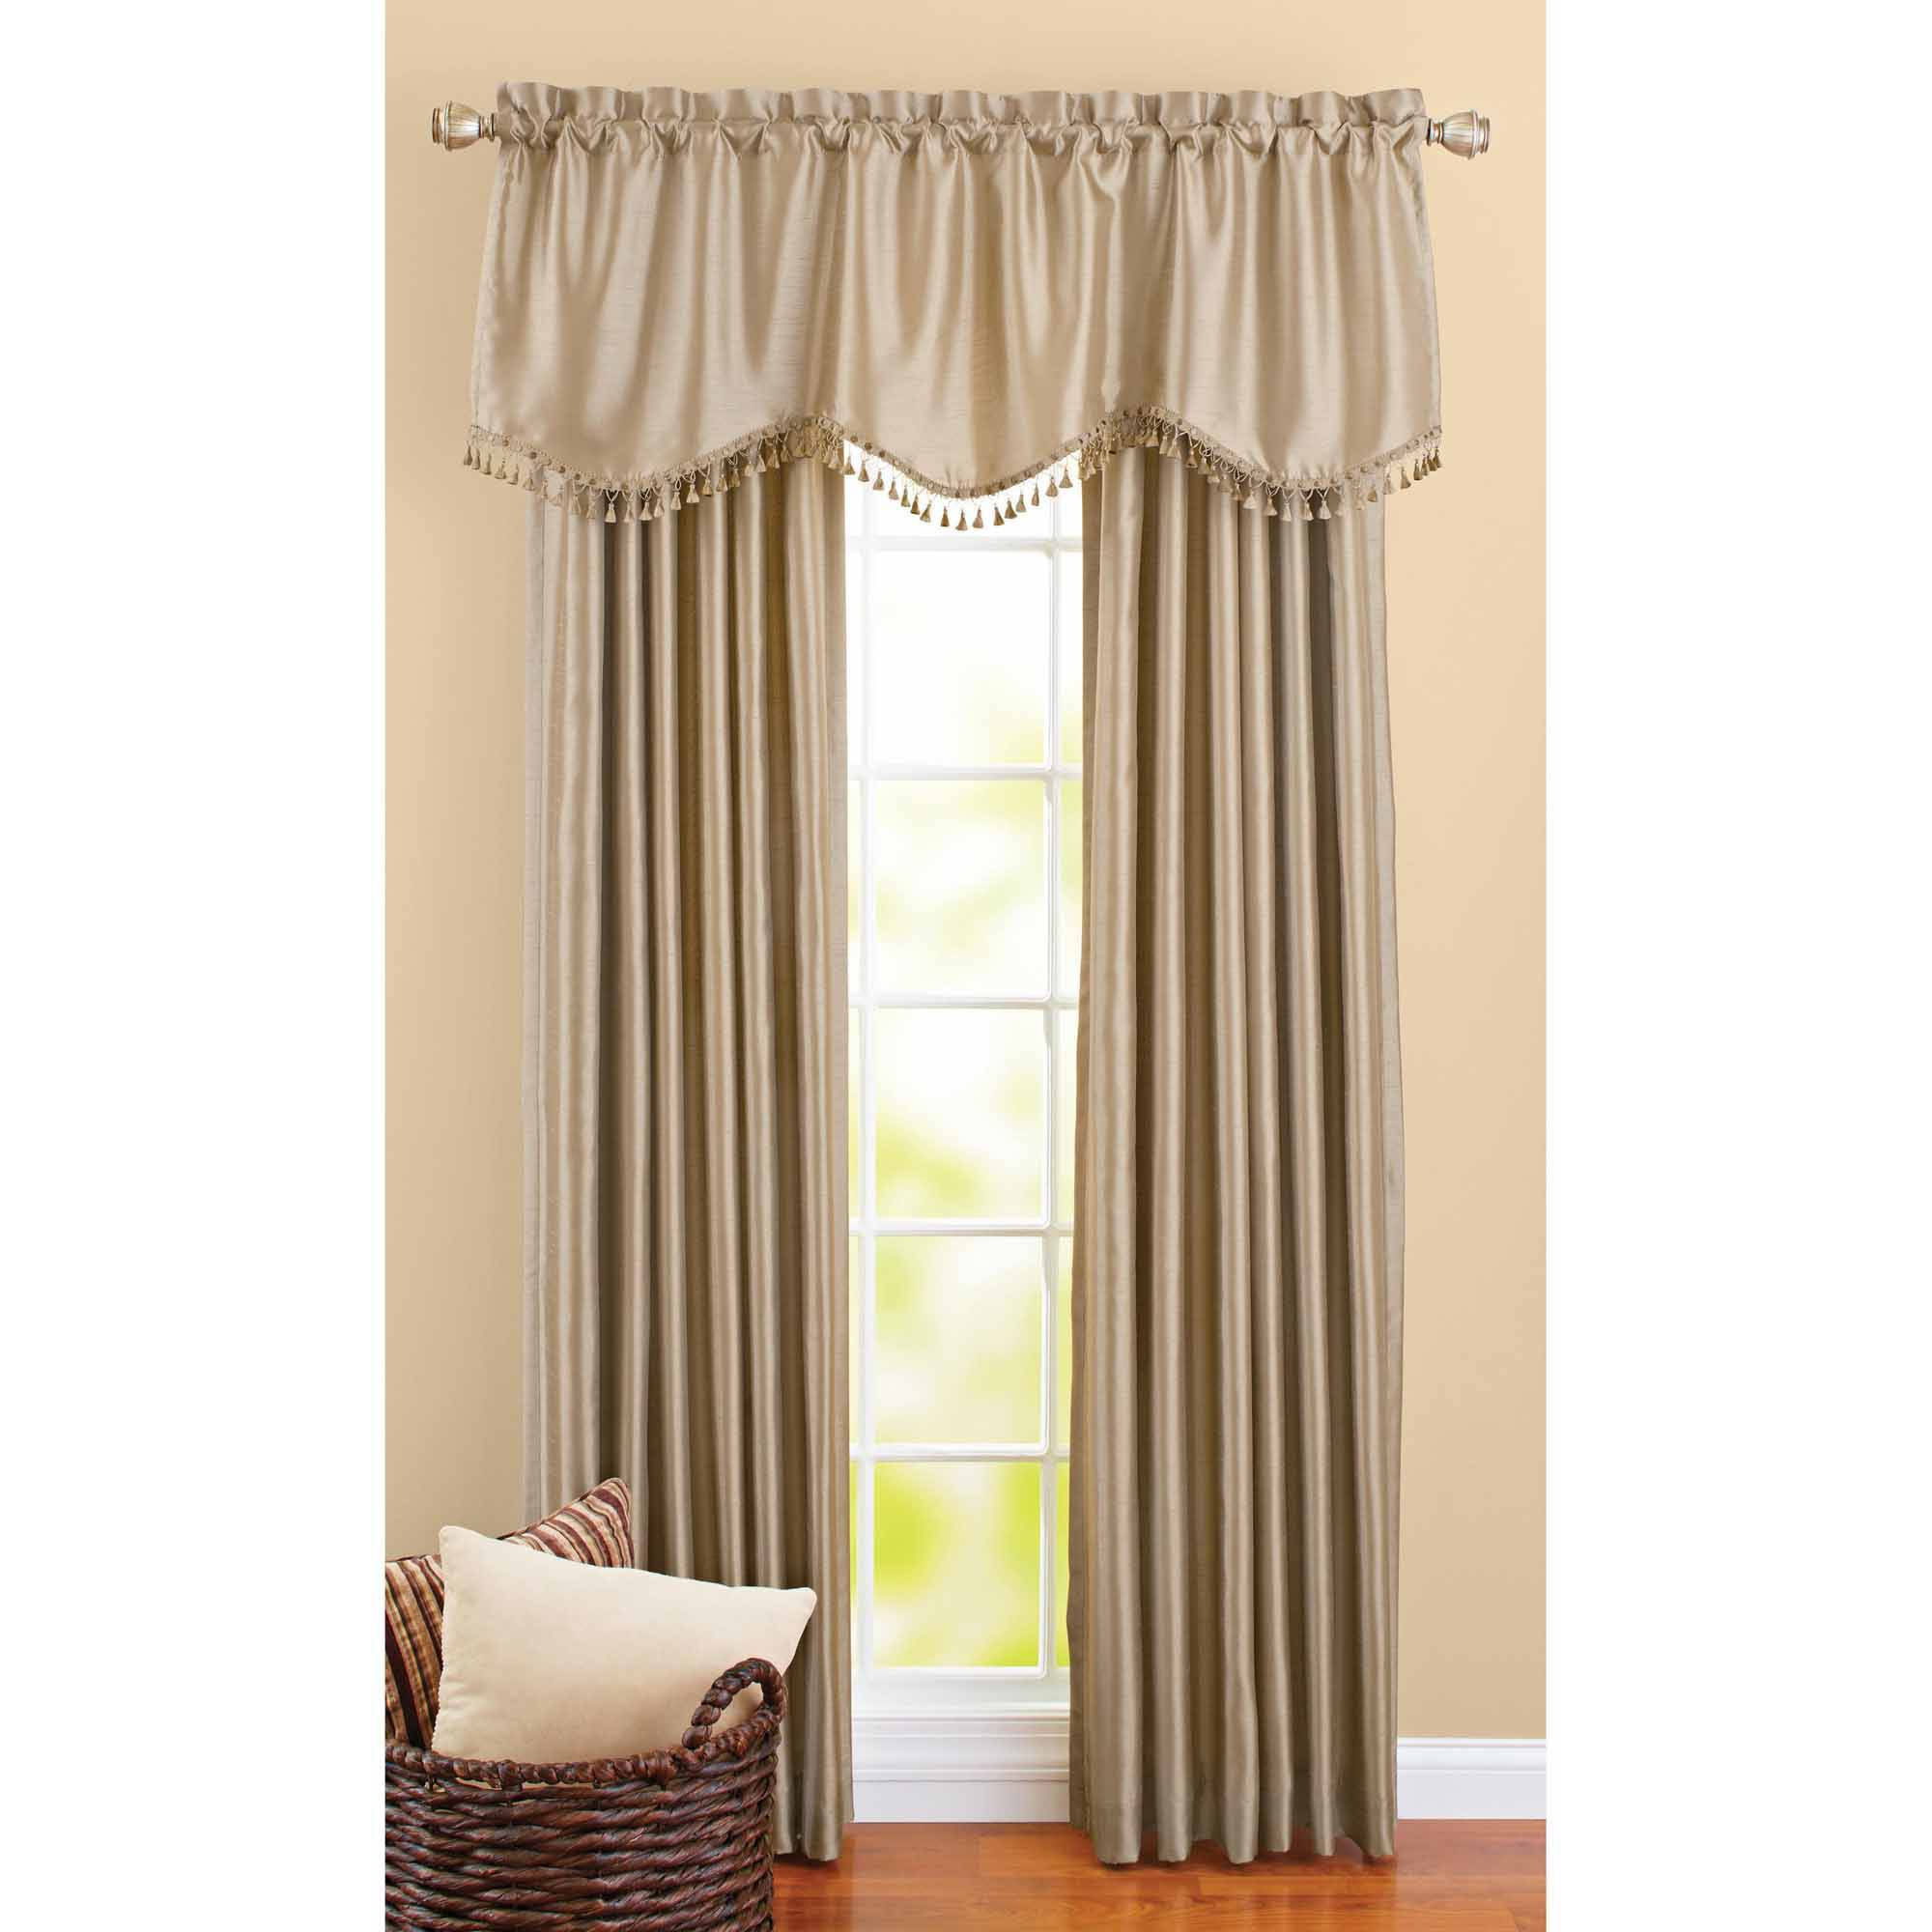 High Quality ***DISCONTINUED*** Better Homes And Gardens Crushed Taffeta Window Curtains,